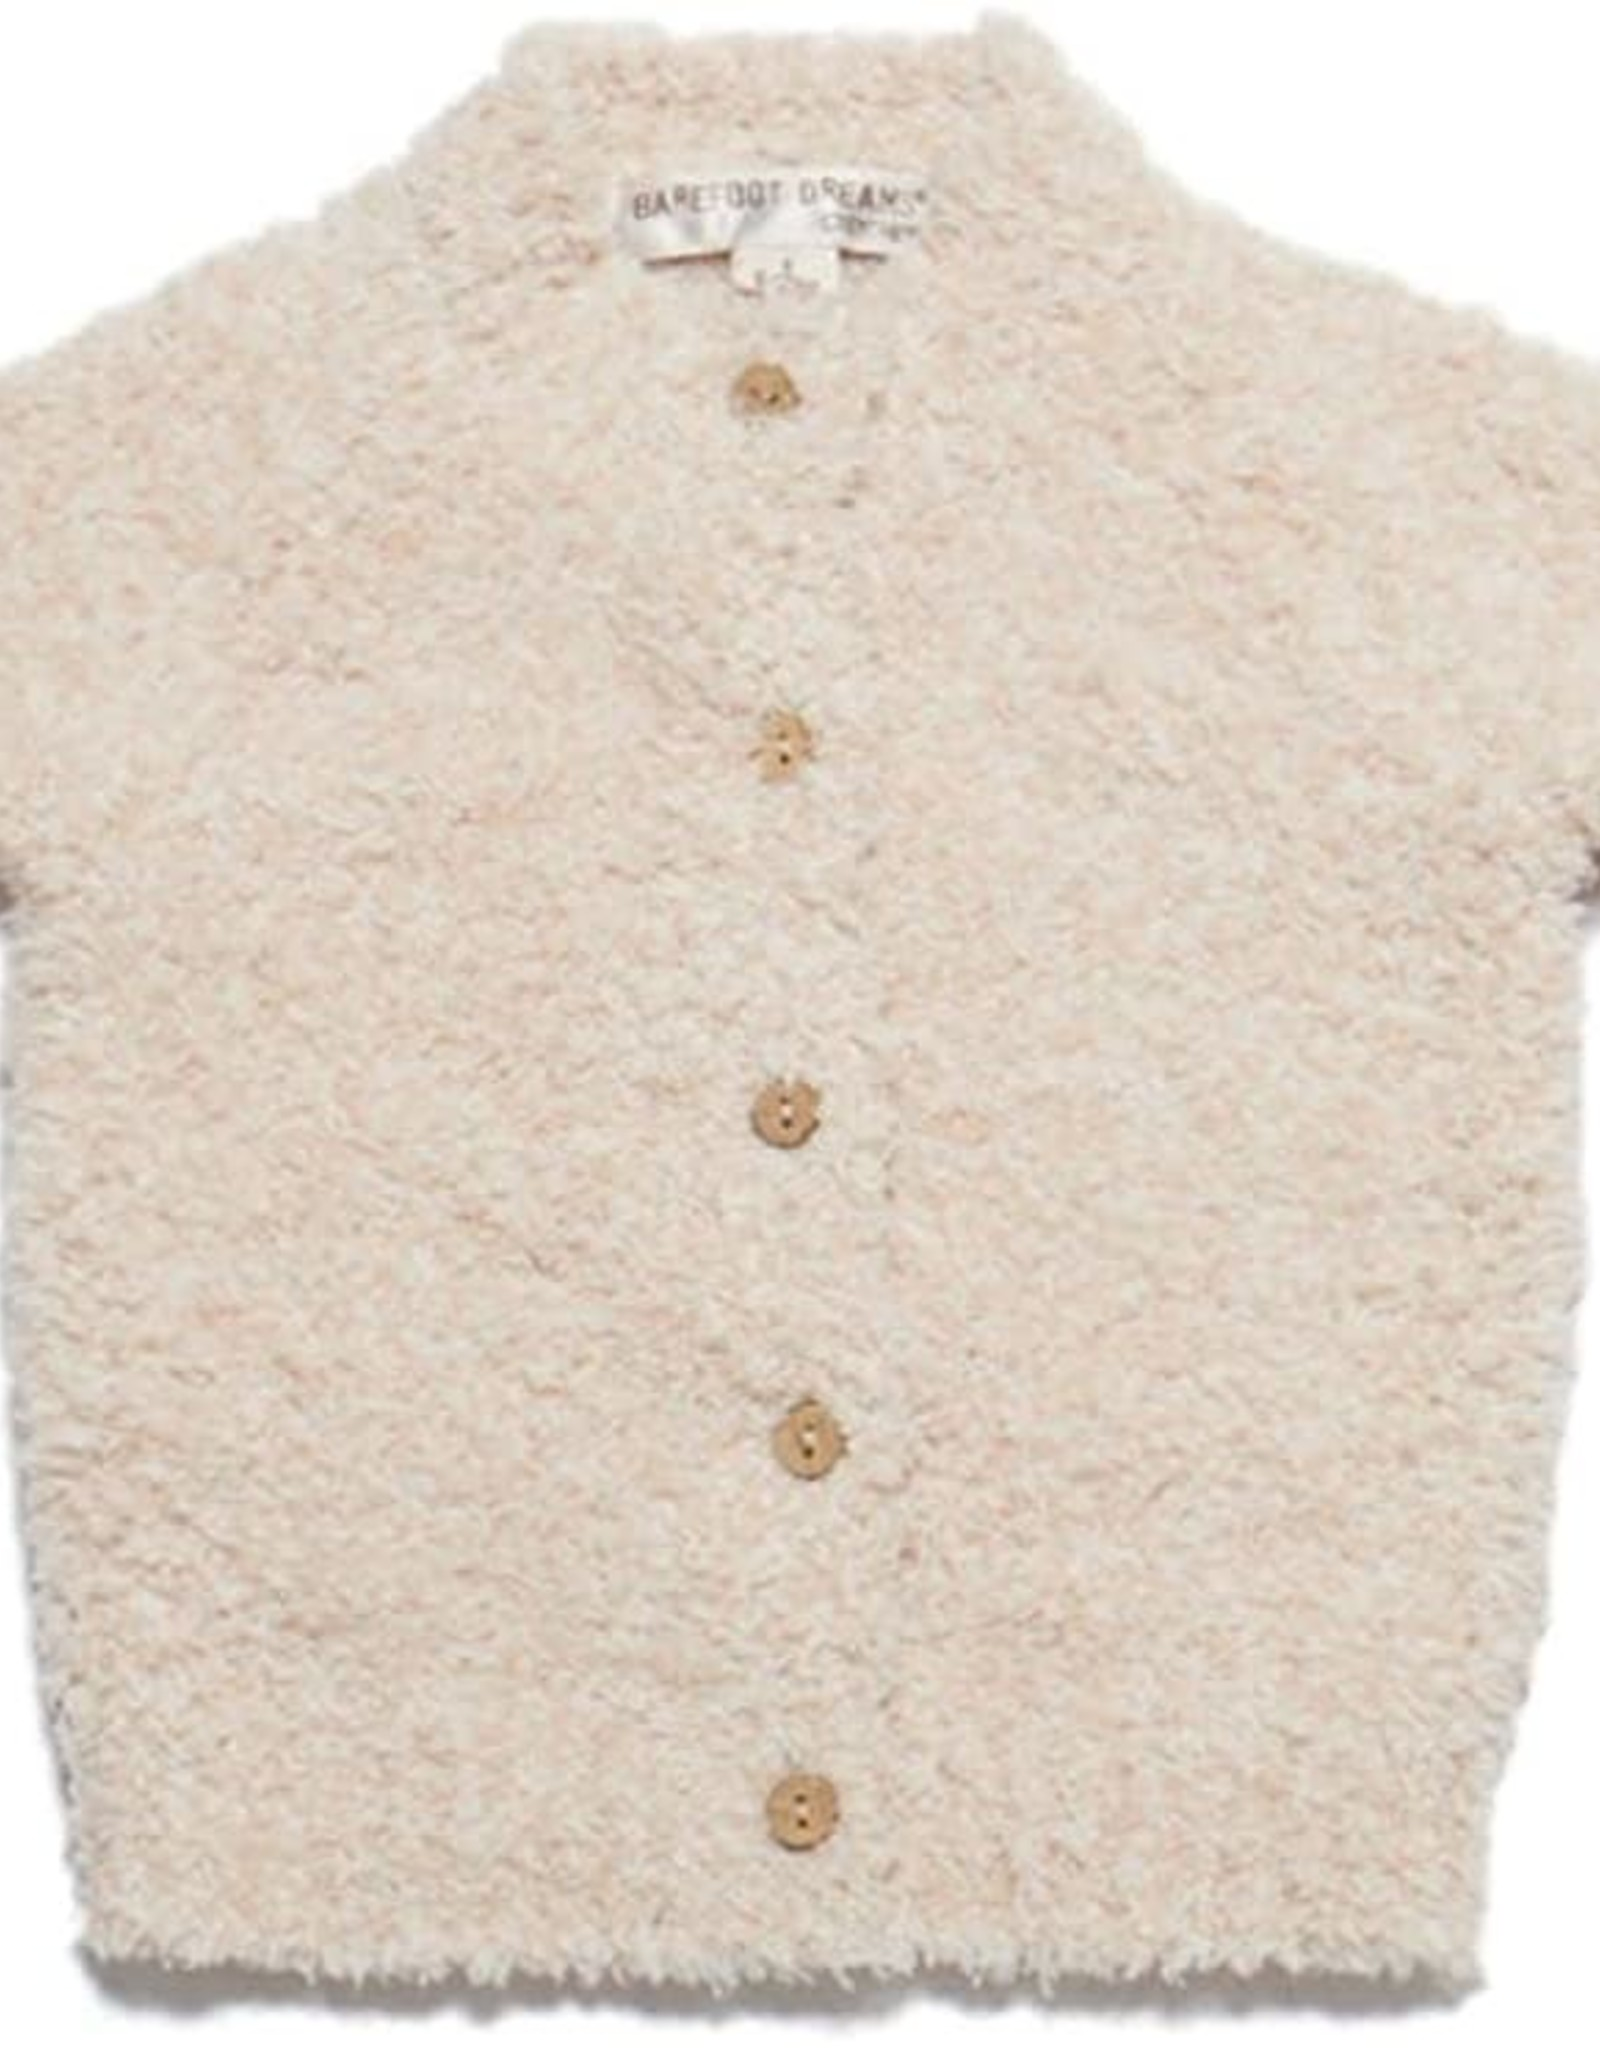 Barefoot Dreams Barefoot Dreams Infant Heathered Cardigan